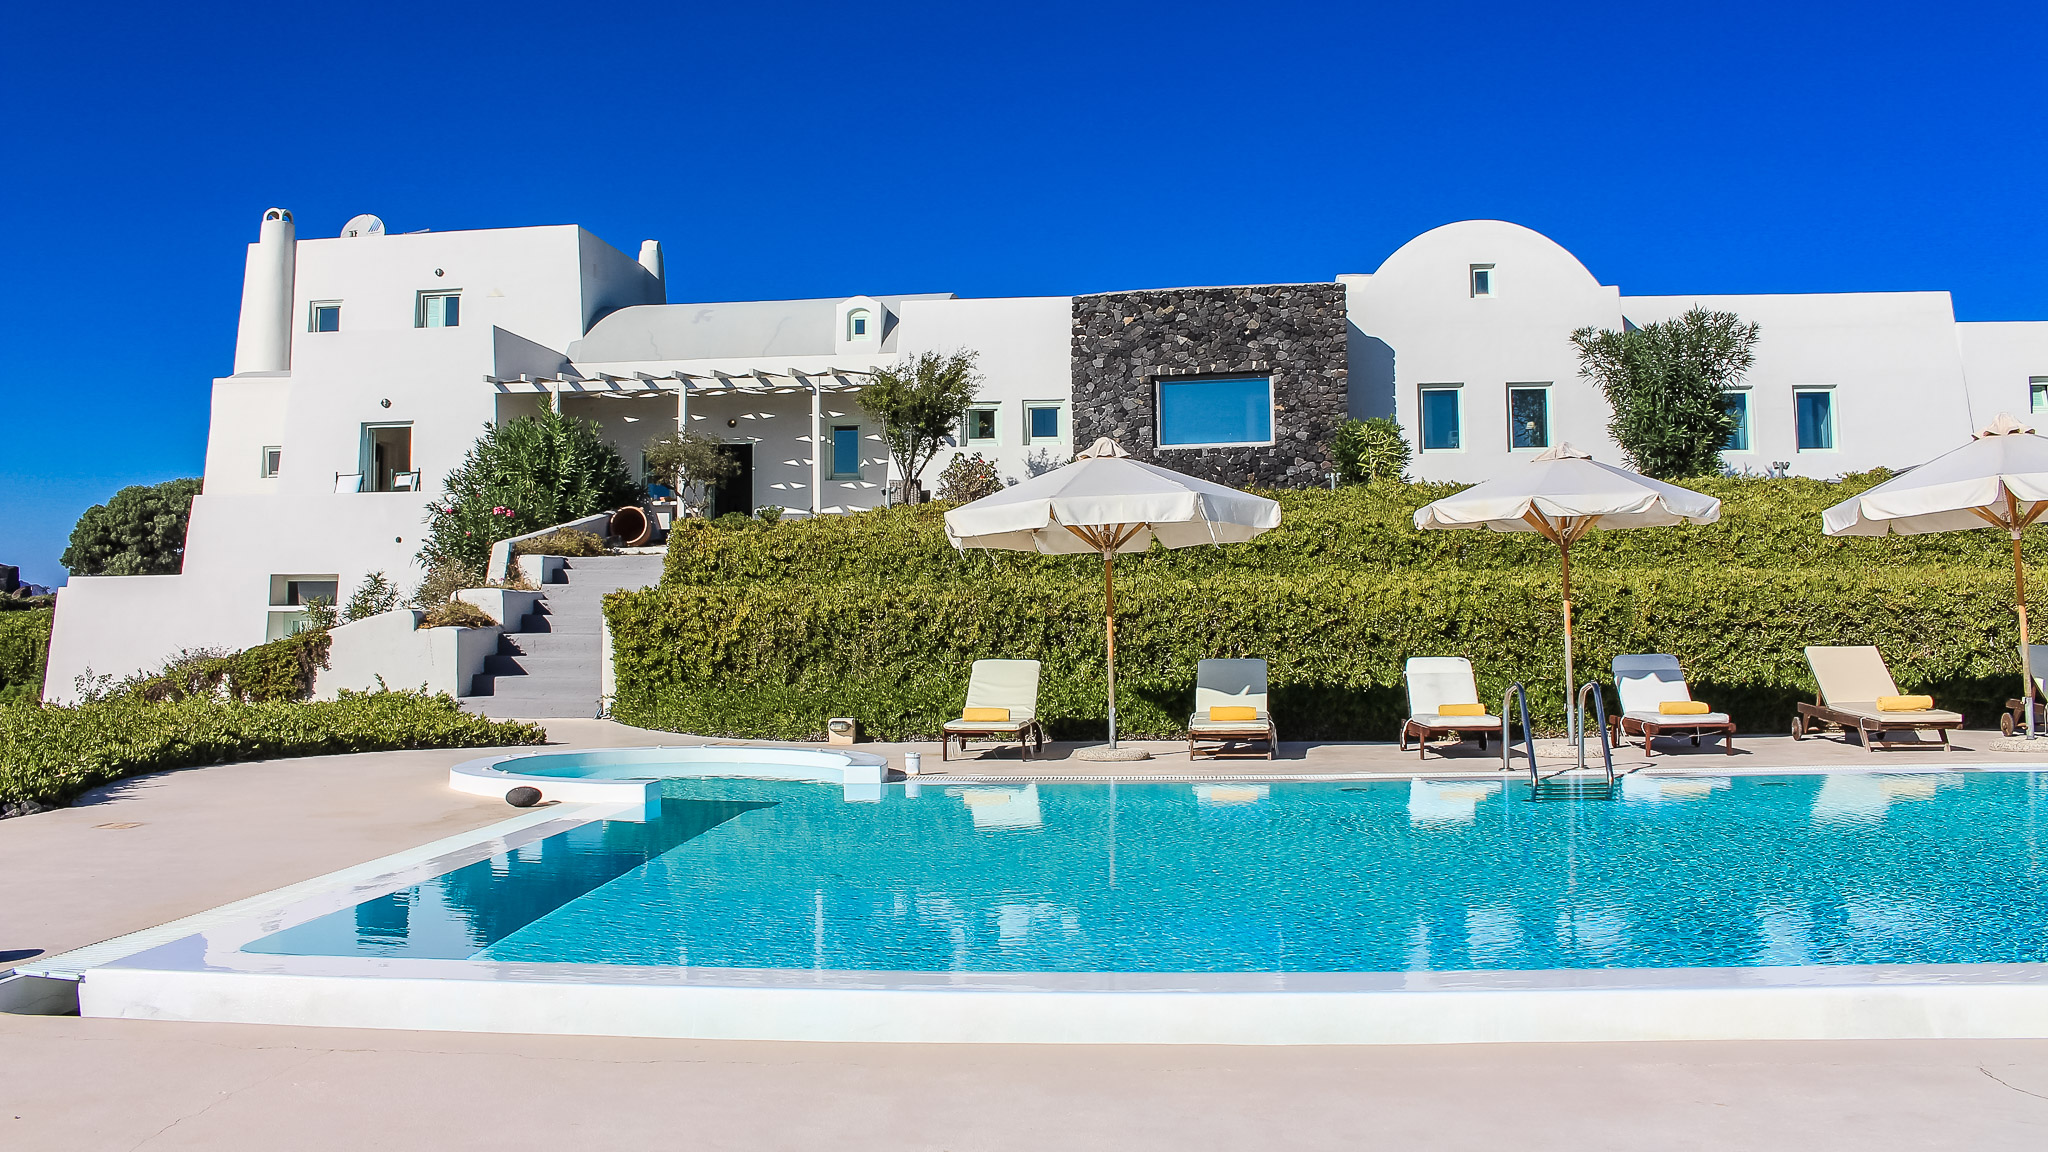 santorini villa holidays greece